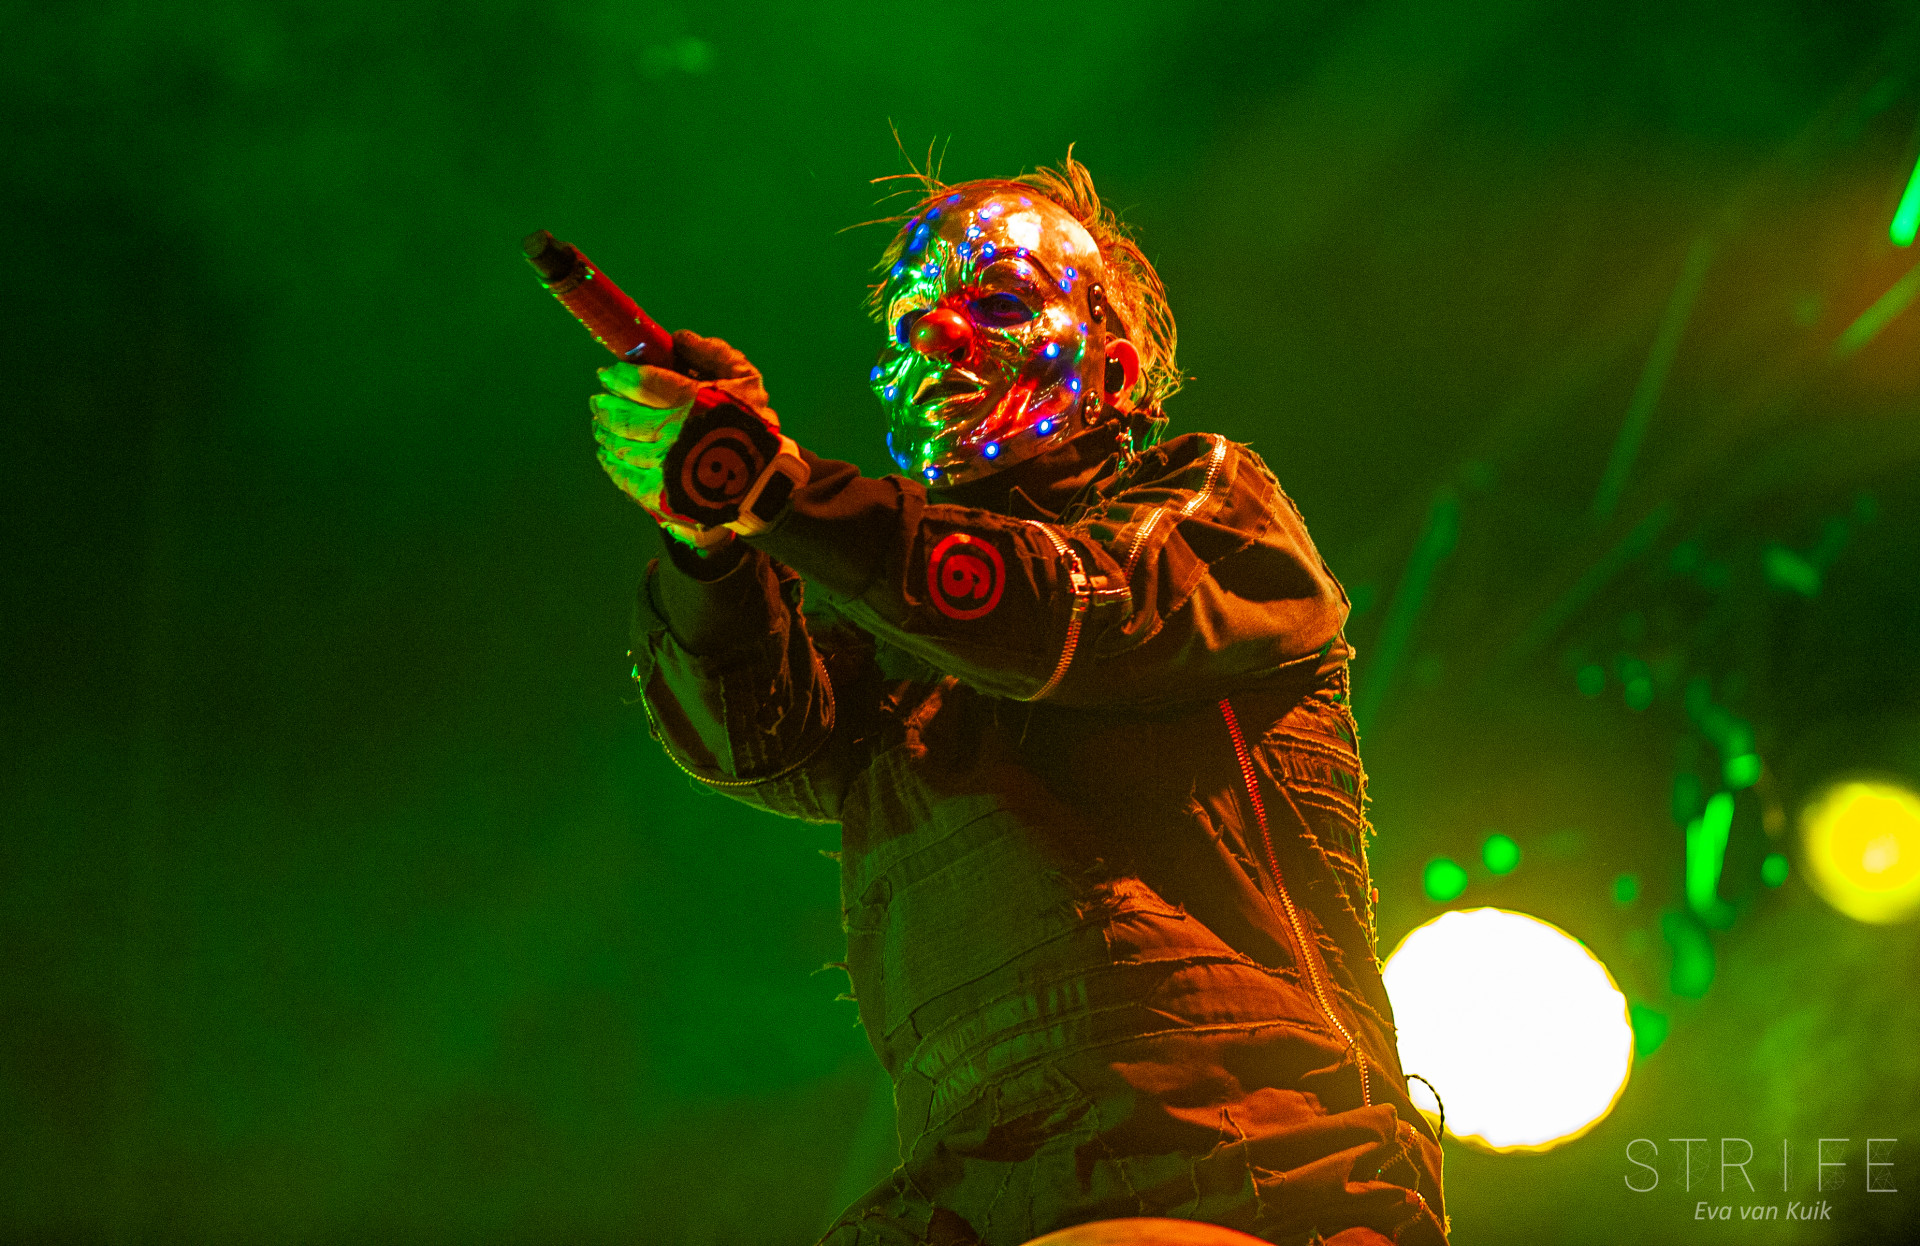 Rock Am Ring Slipknot Closes Out Festival With Massive